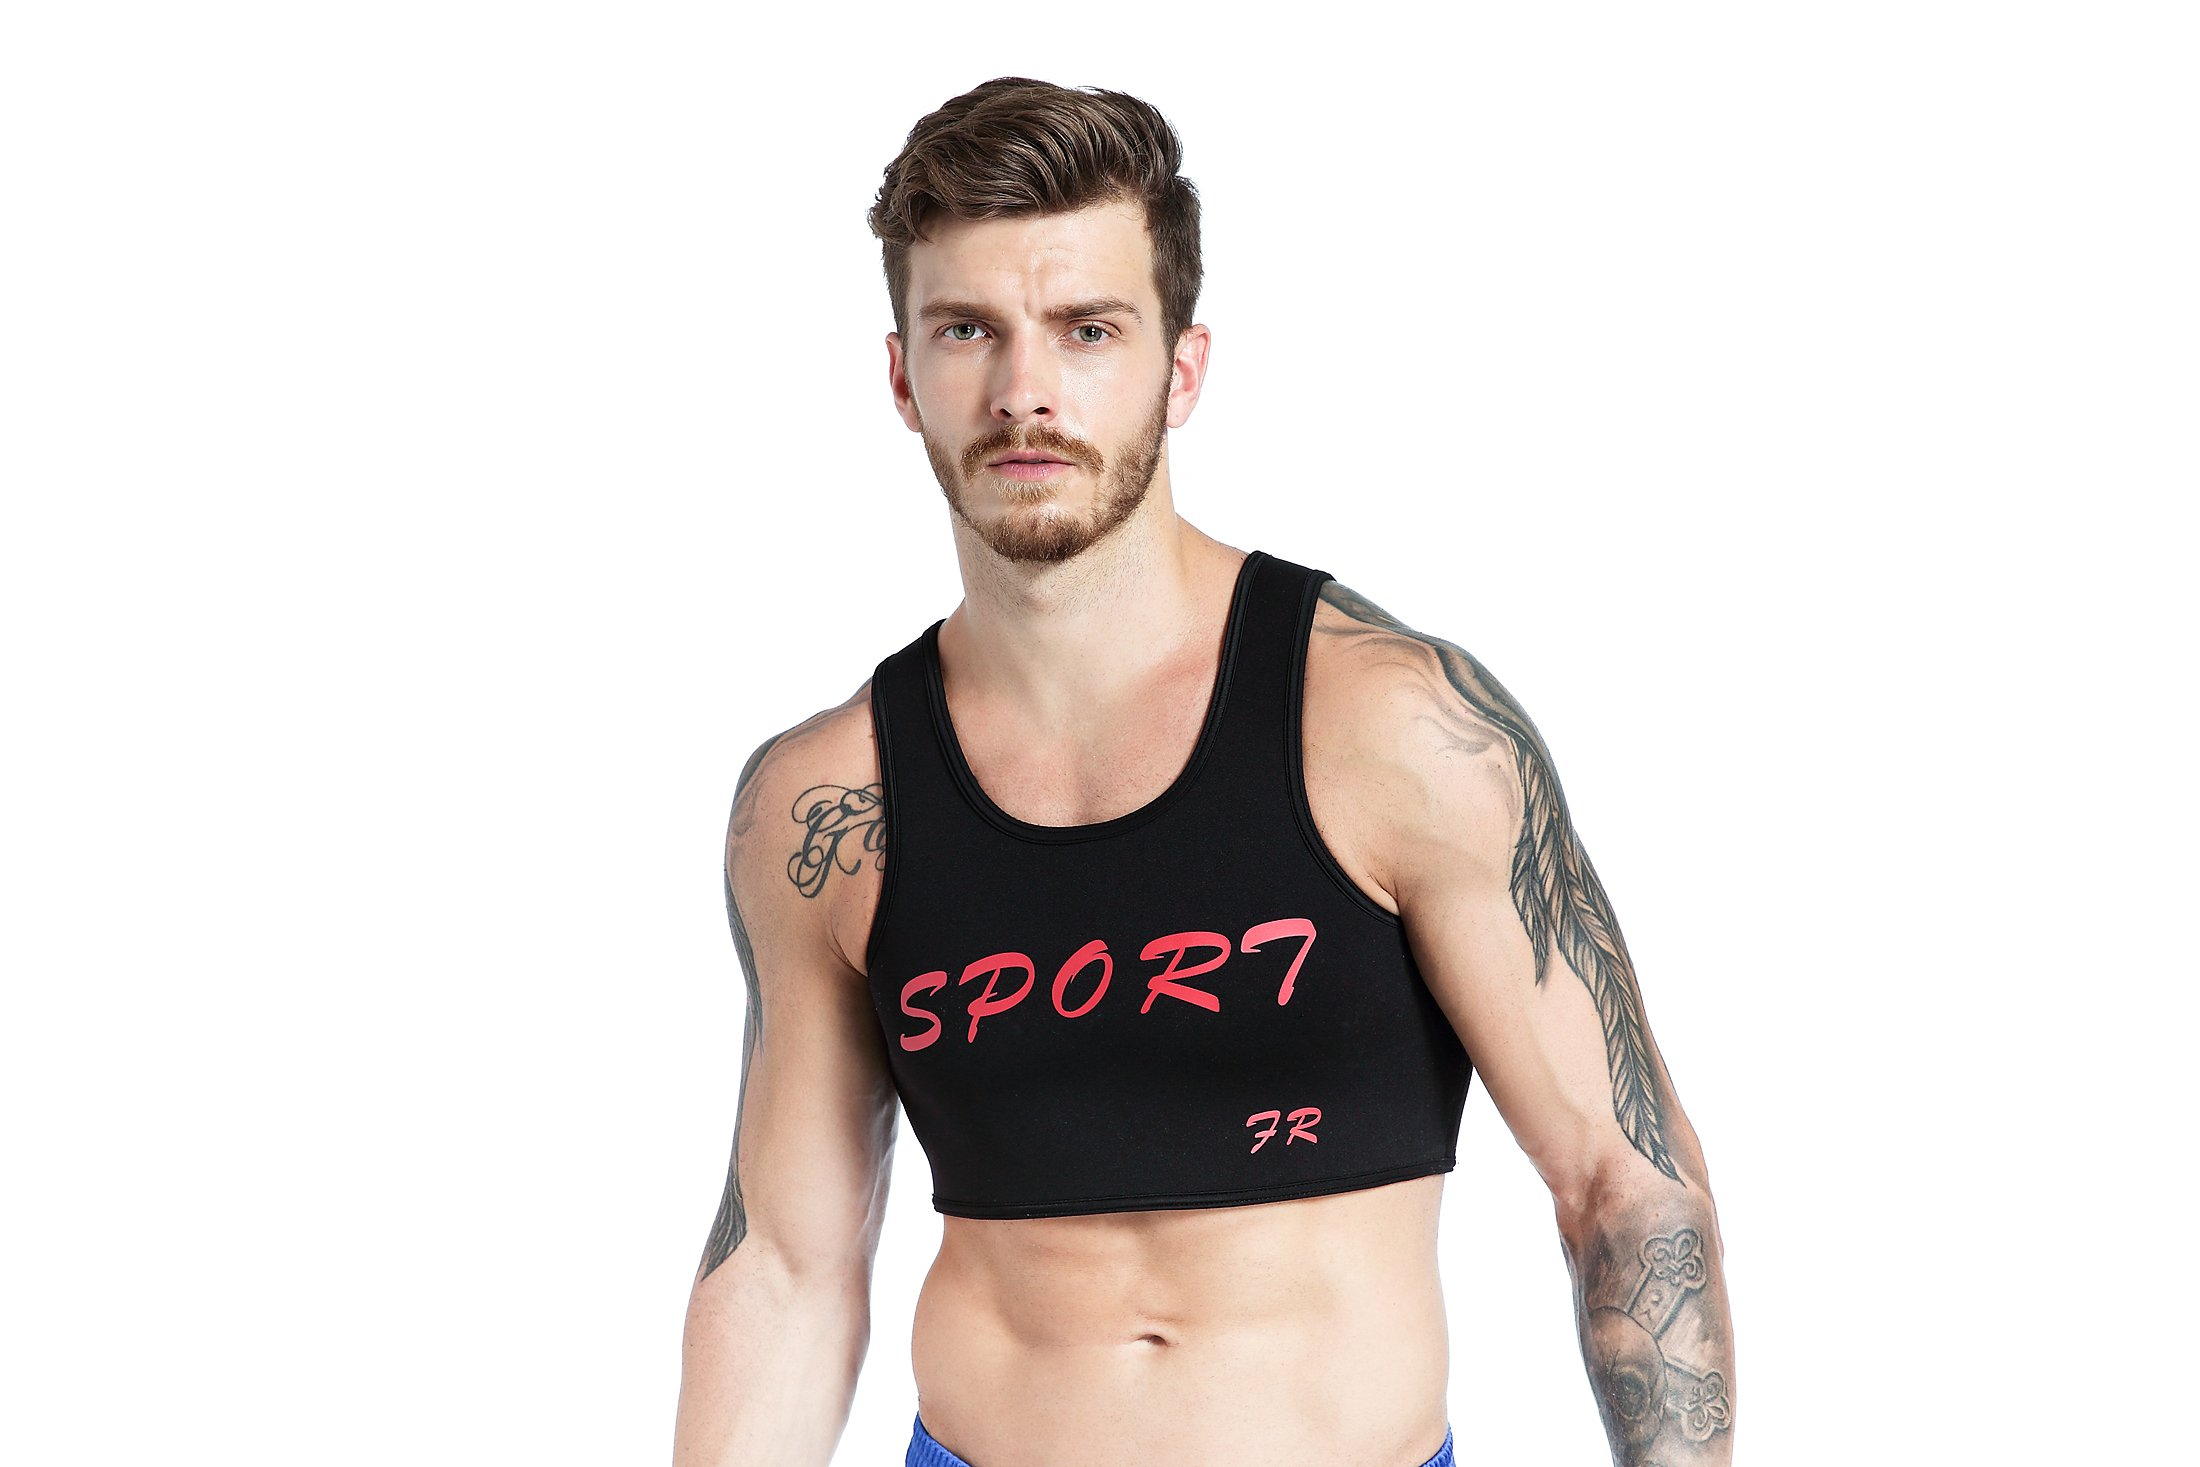 F plus R Mens Neoprene Chest Supports Braces Vest Protective Gear Fitness Sports Injury Prevention and Recovery Black Small